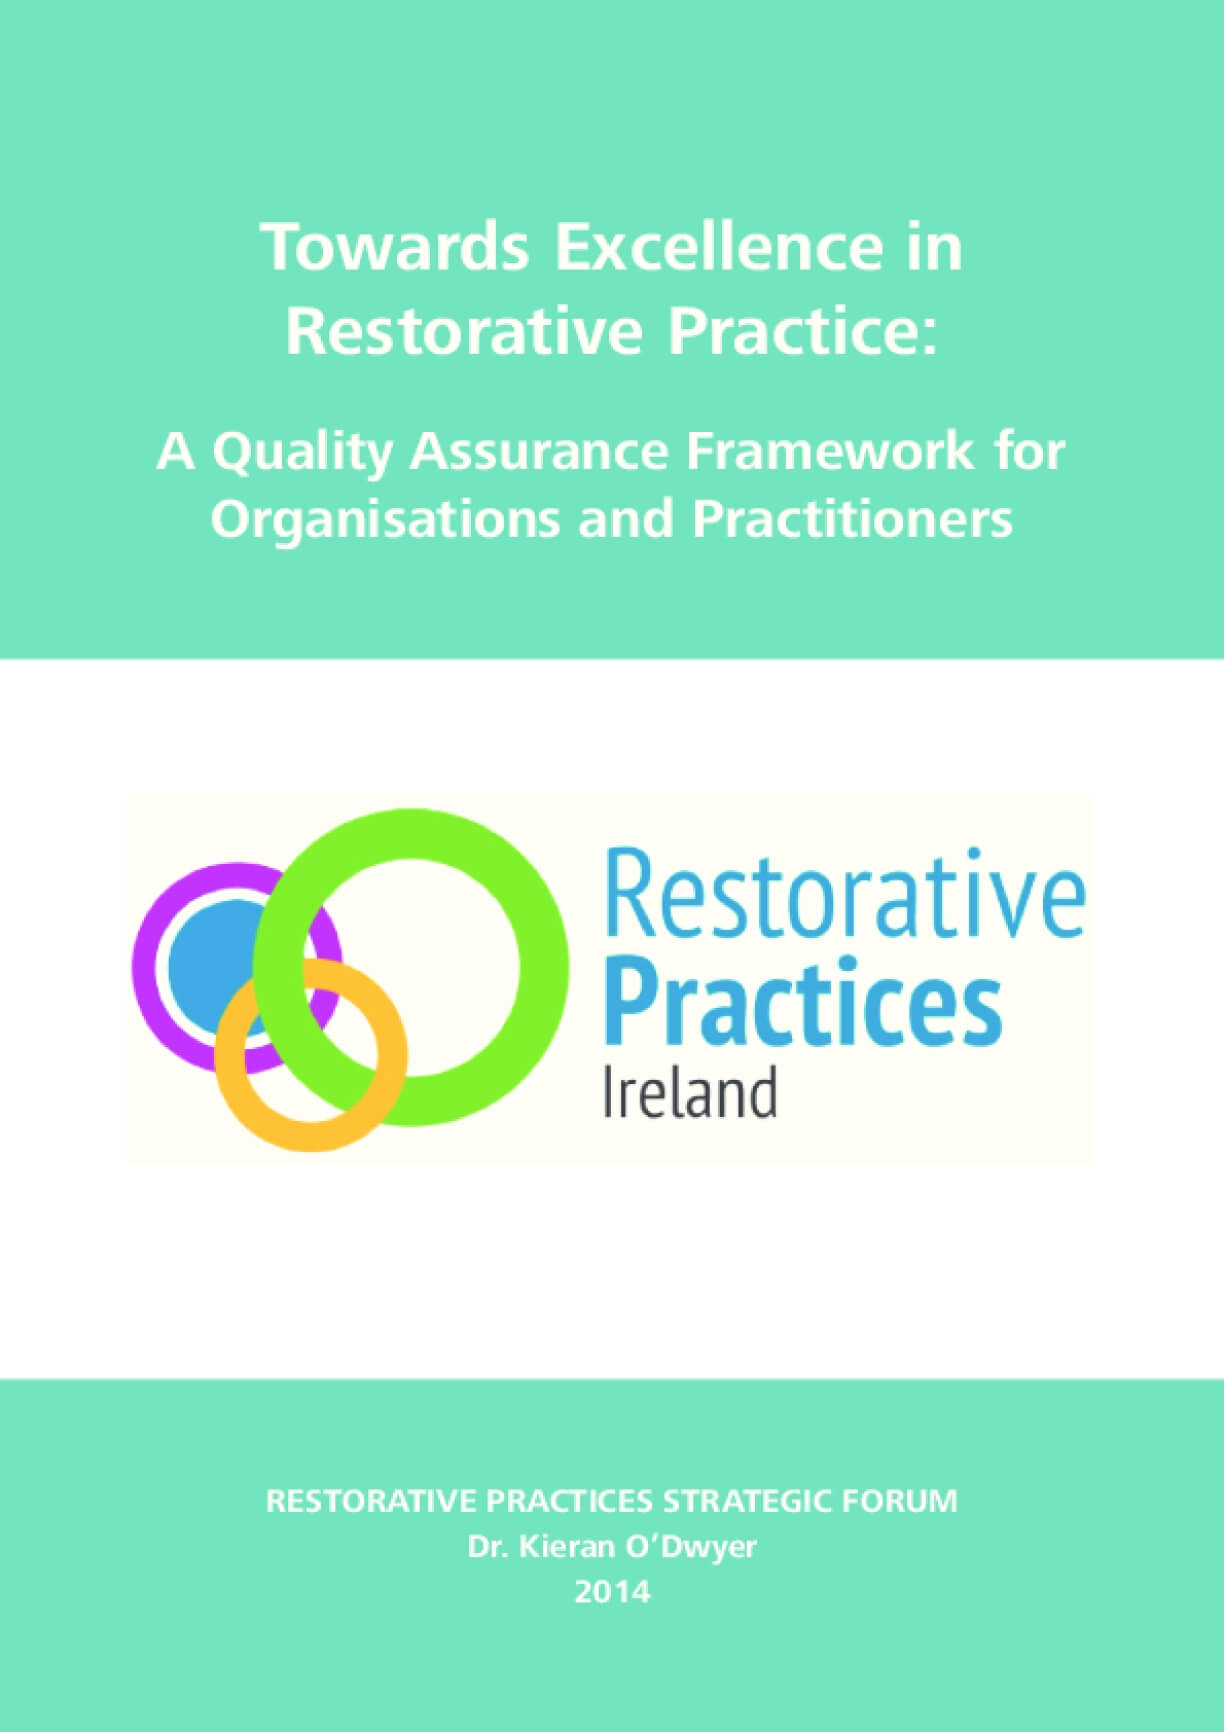 Towards Excellence in Restorative Practice: A Quality Assurance Framework for Organisations and Practitioners